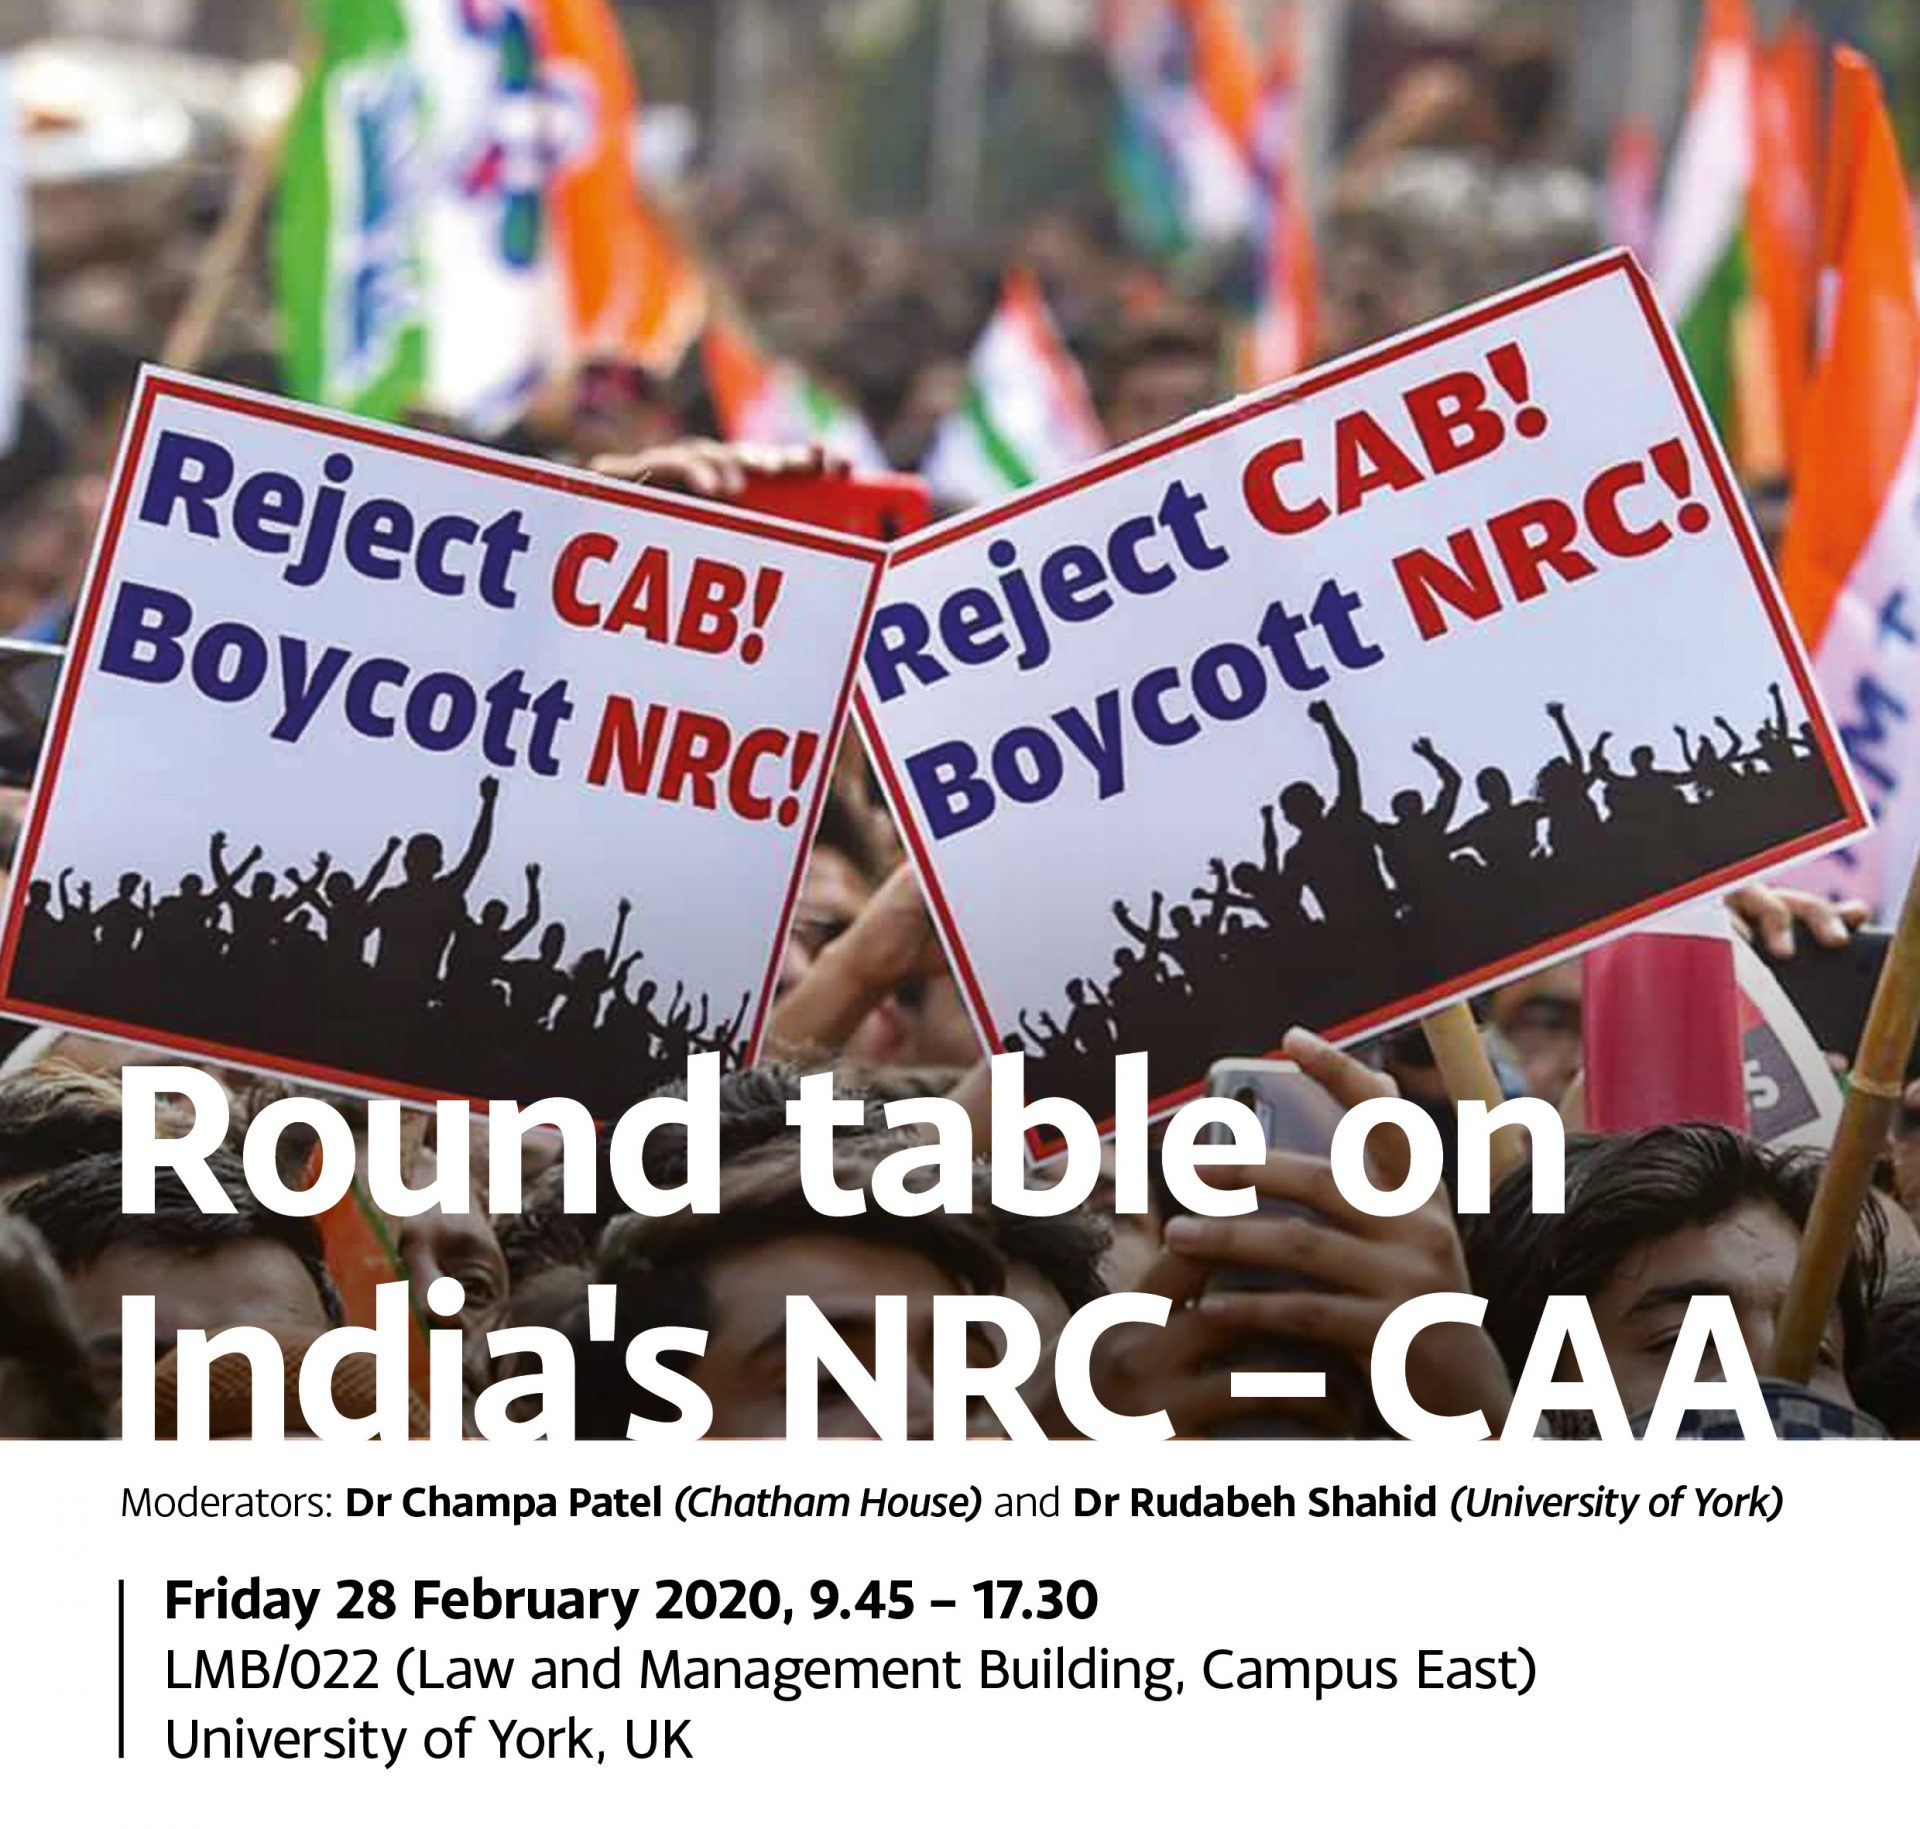 Round table on India's NRC - CAA